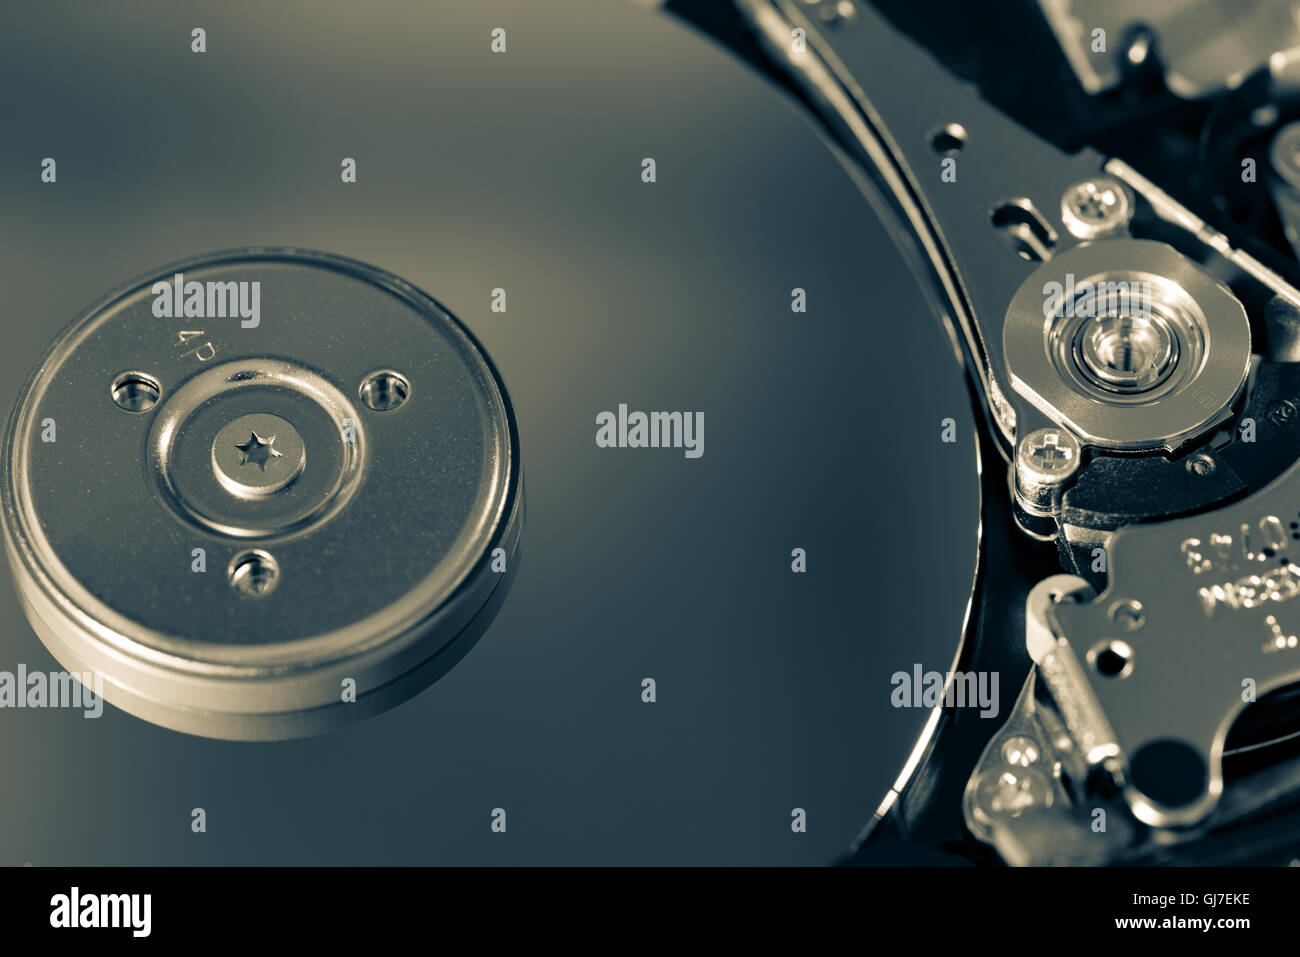 Disassembled hdd - Stock Image